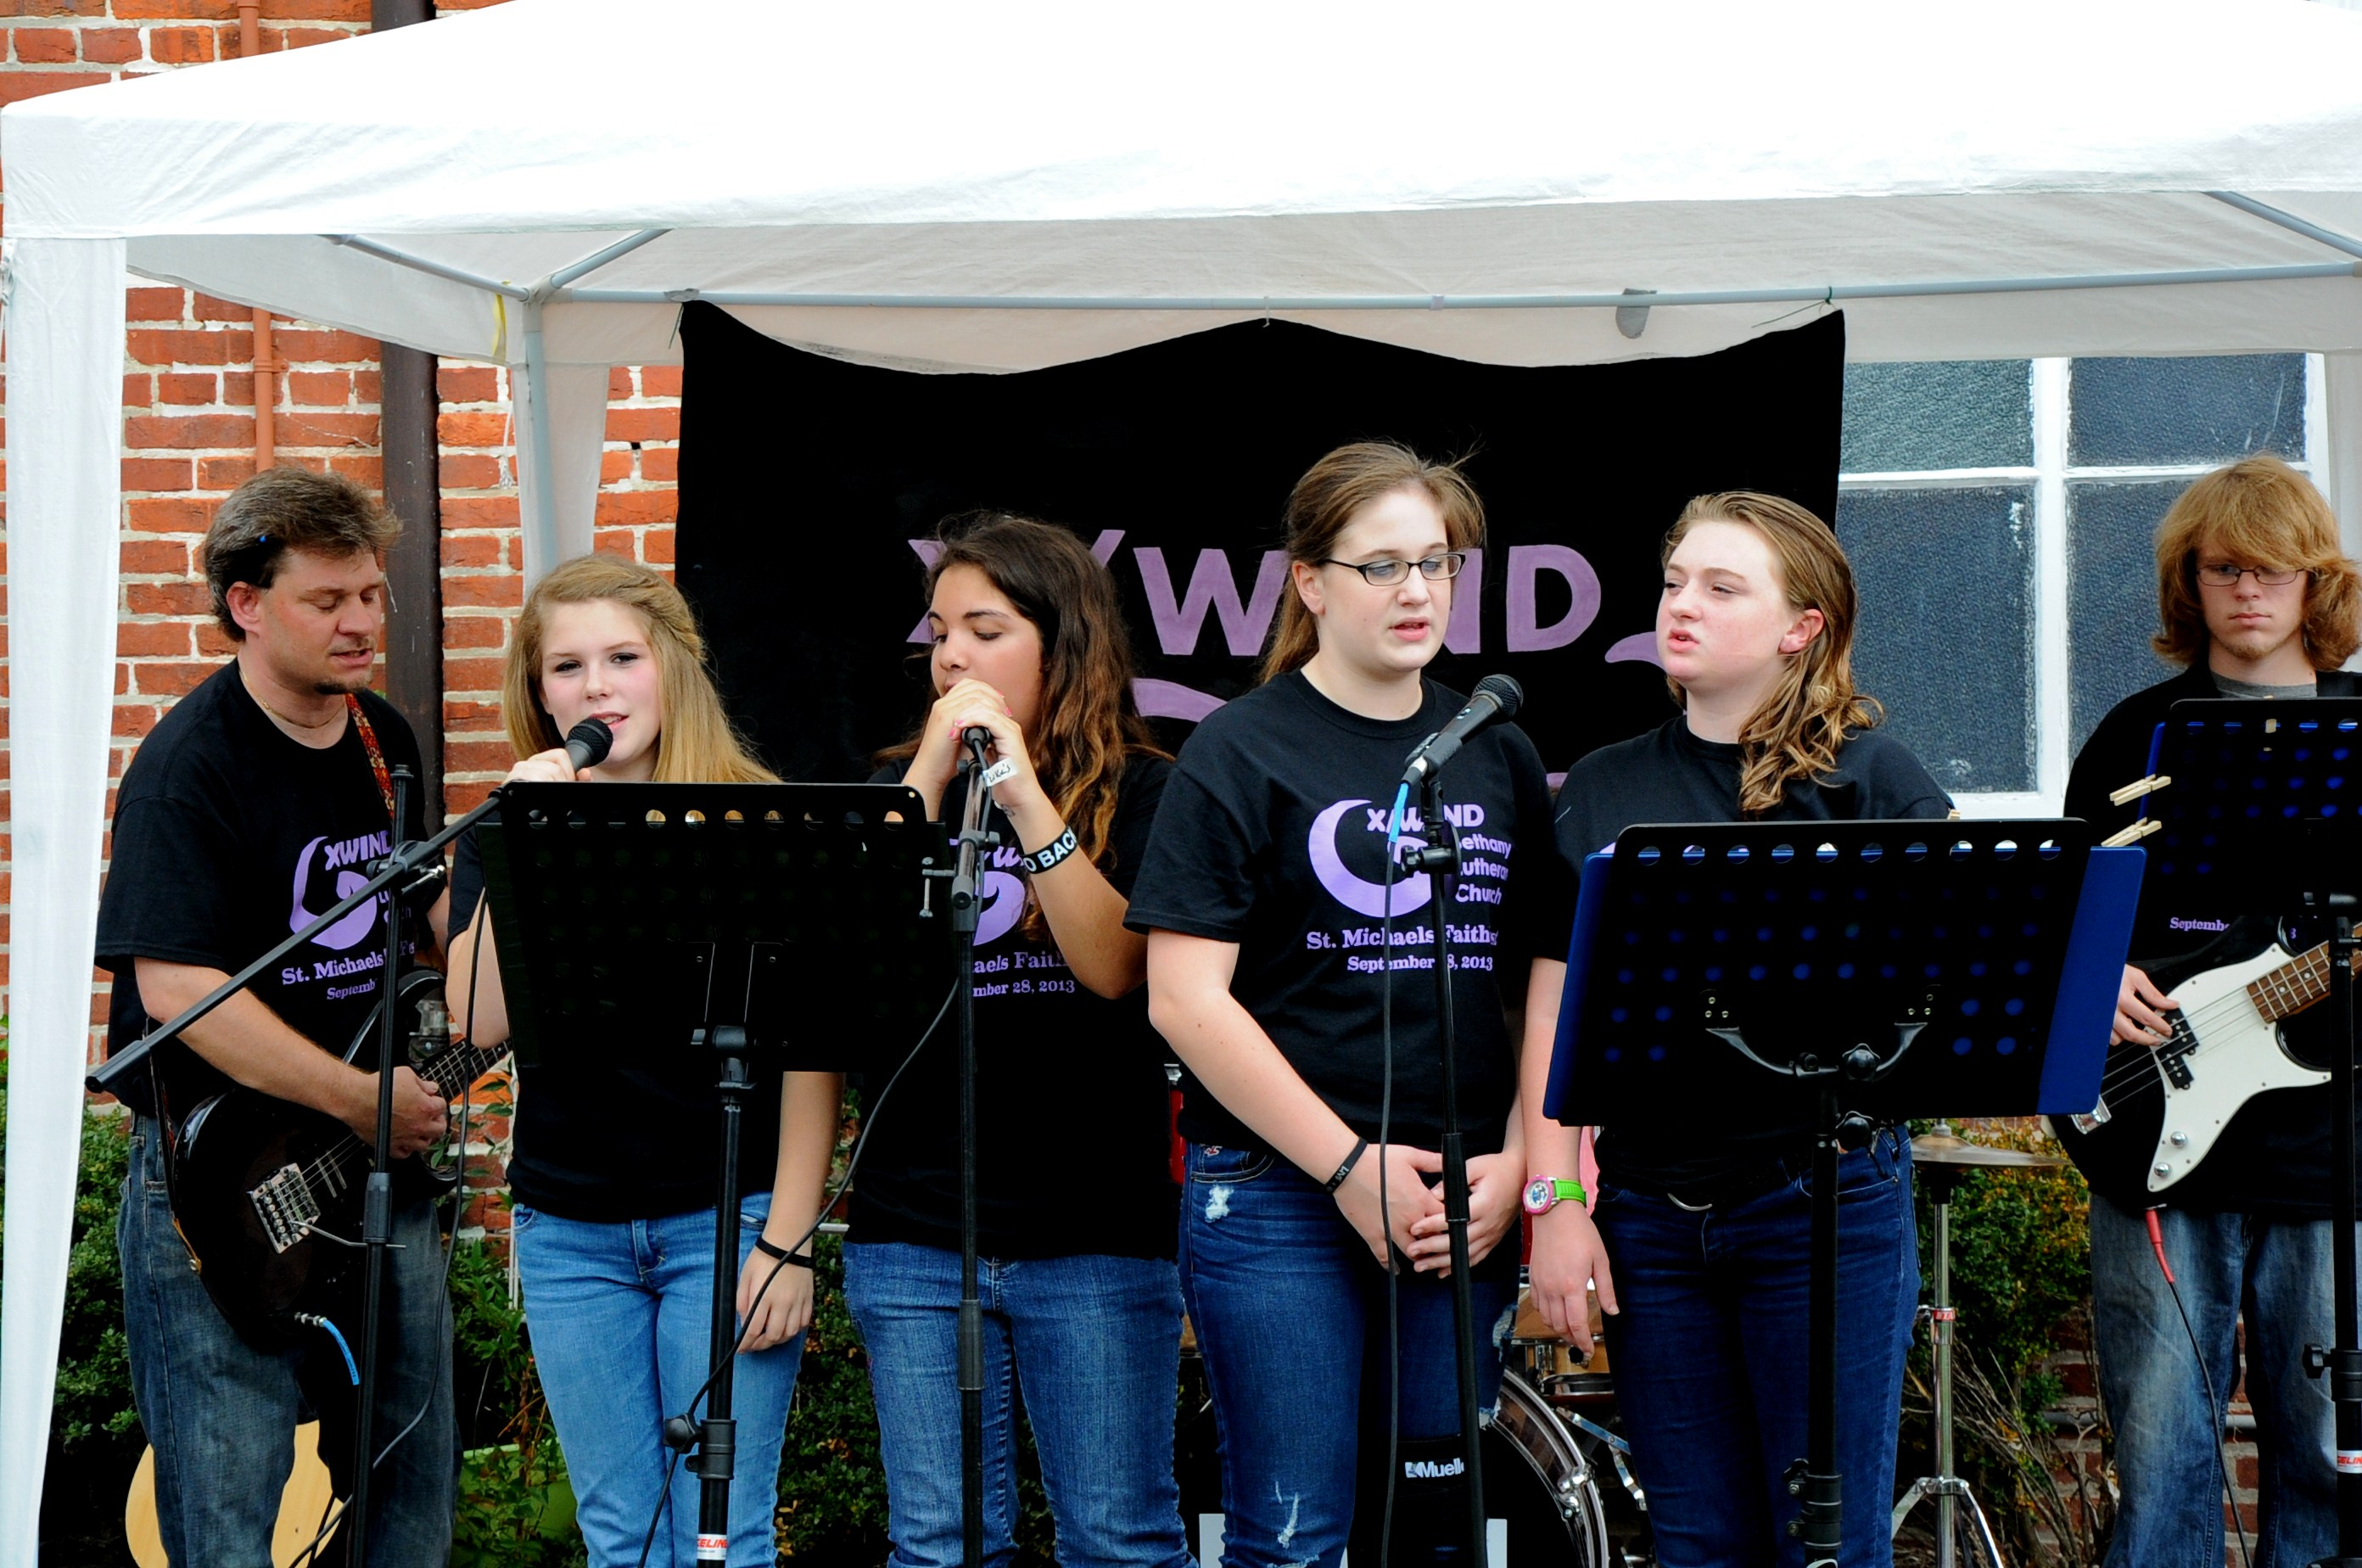 X/WIND Performs at Faith Fest in St. Michaels September 28, 2013